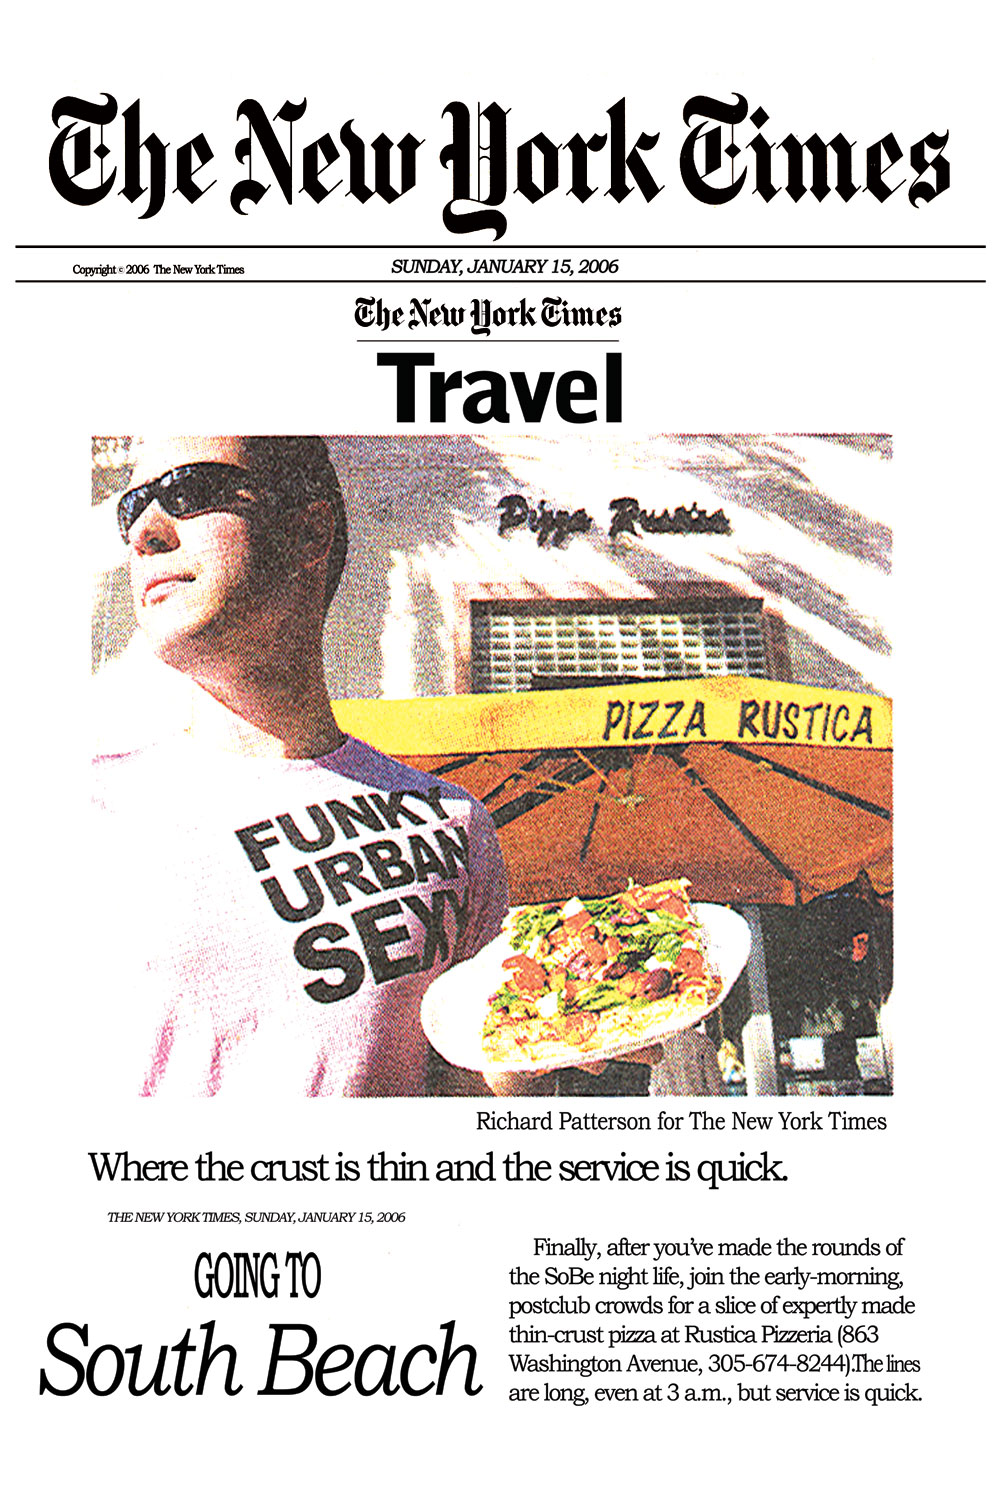 New York Times Travel Expertly Made Thin Crust Pizza